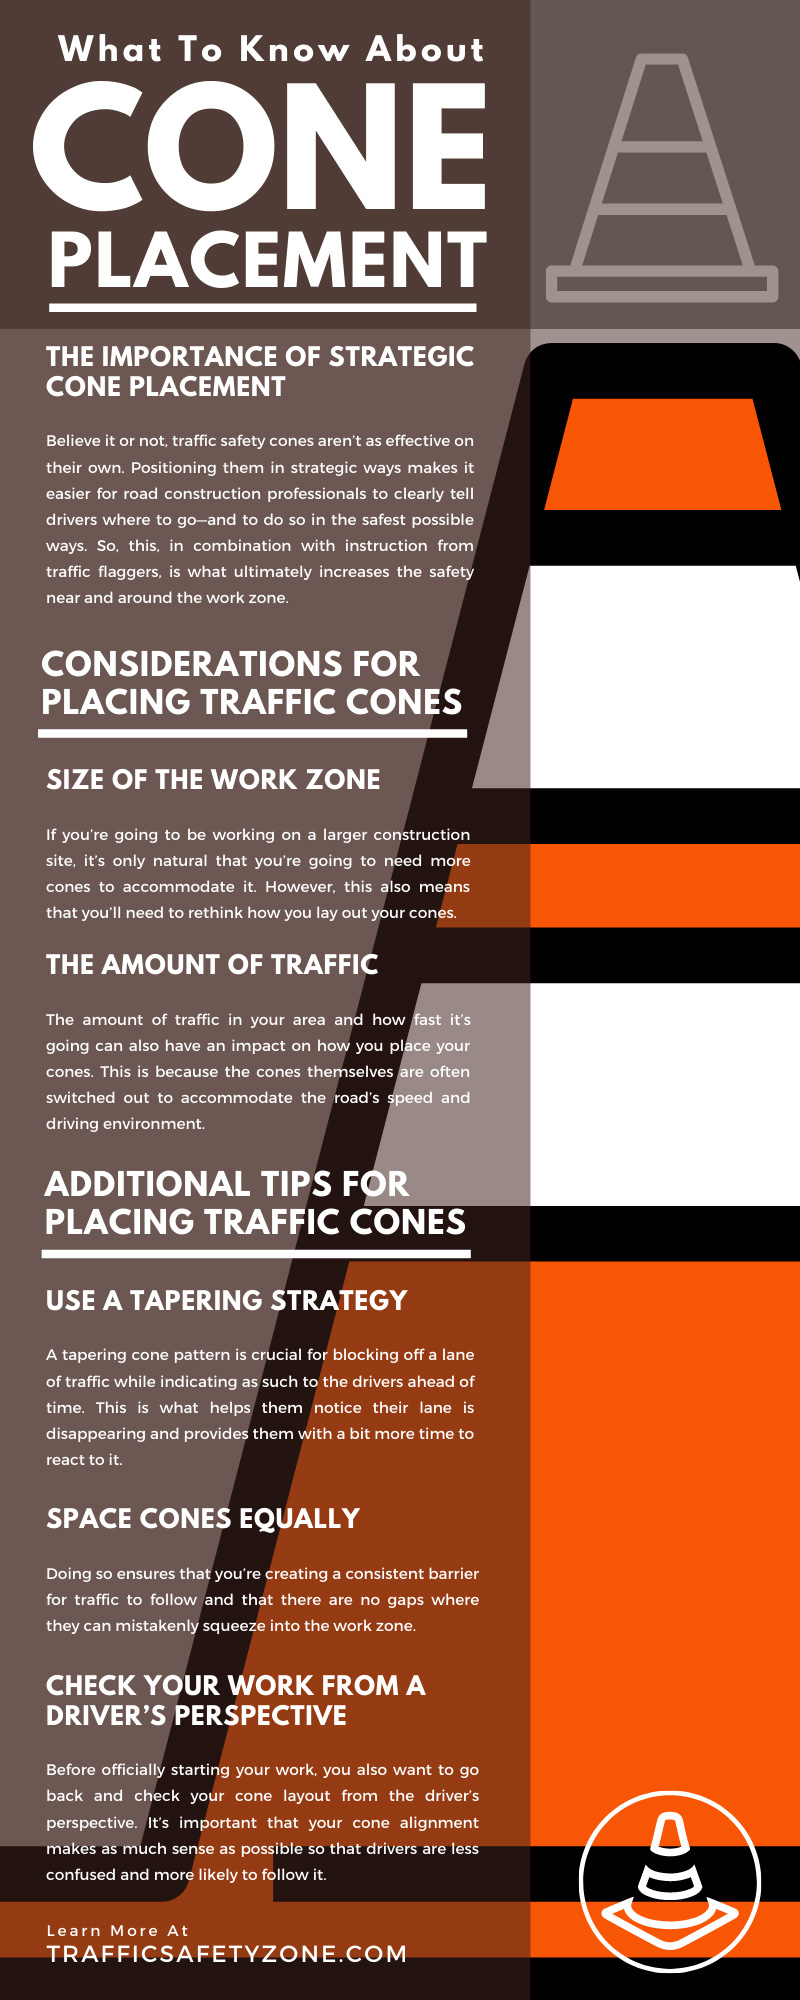 What To Know About Cone Placement